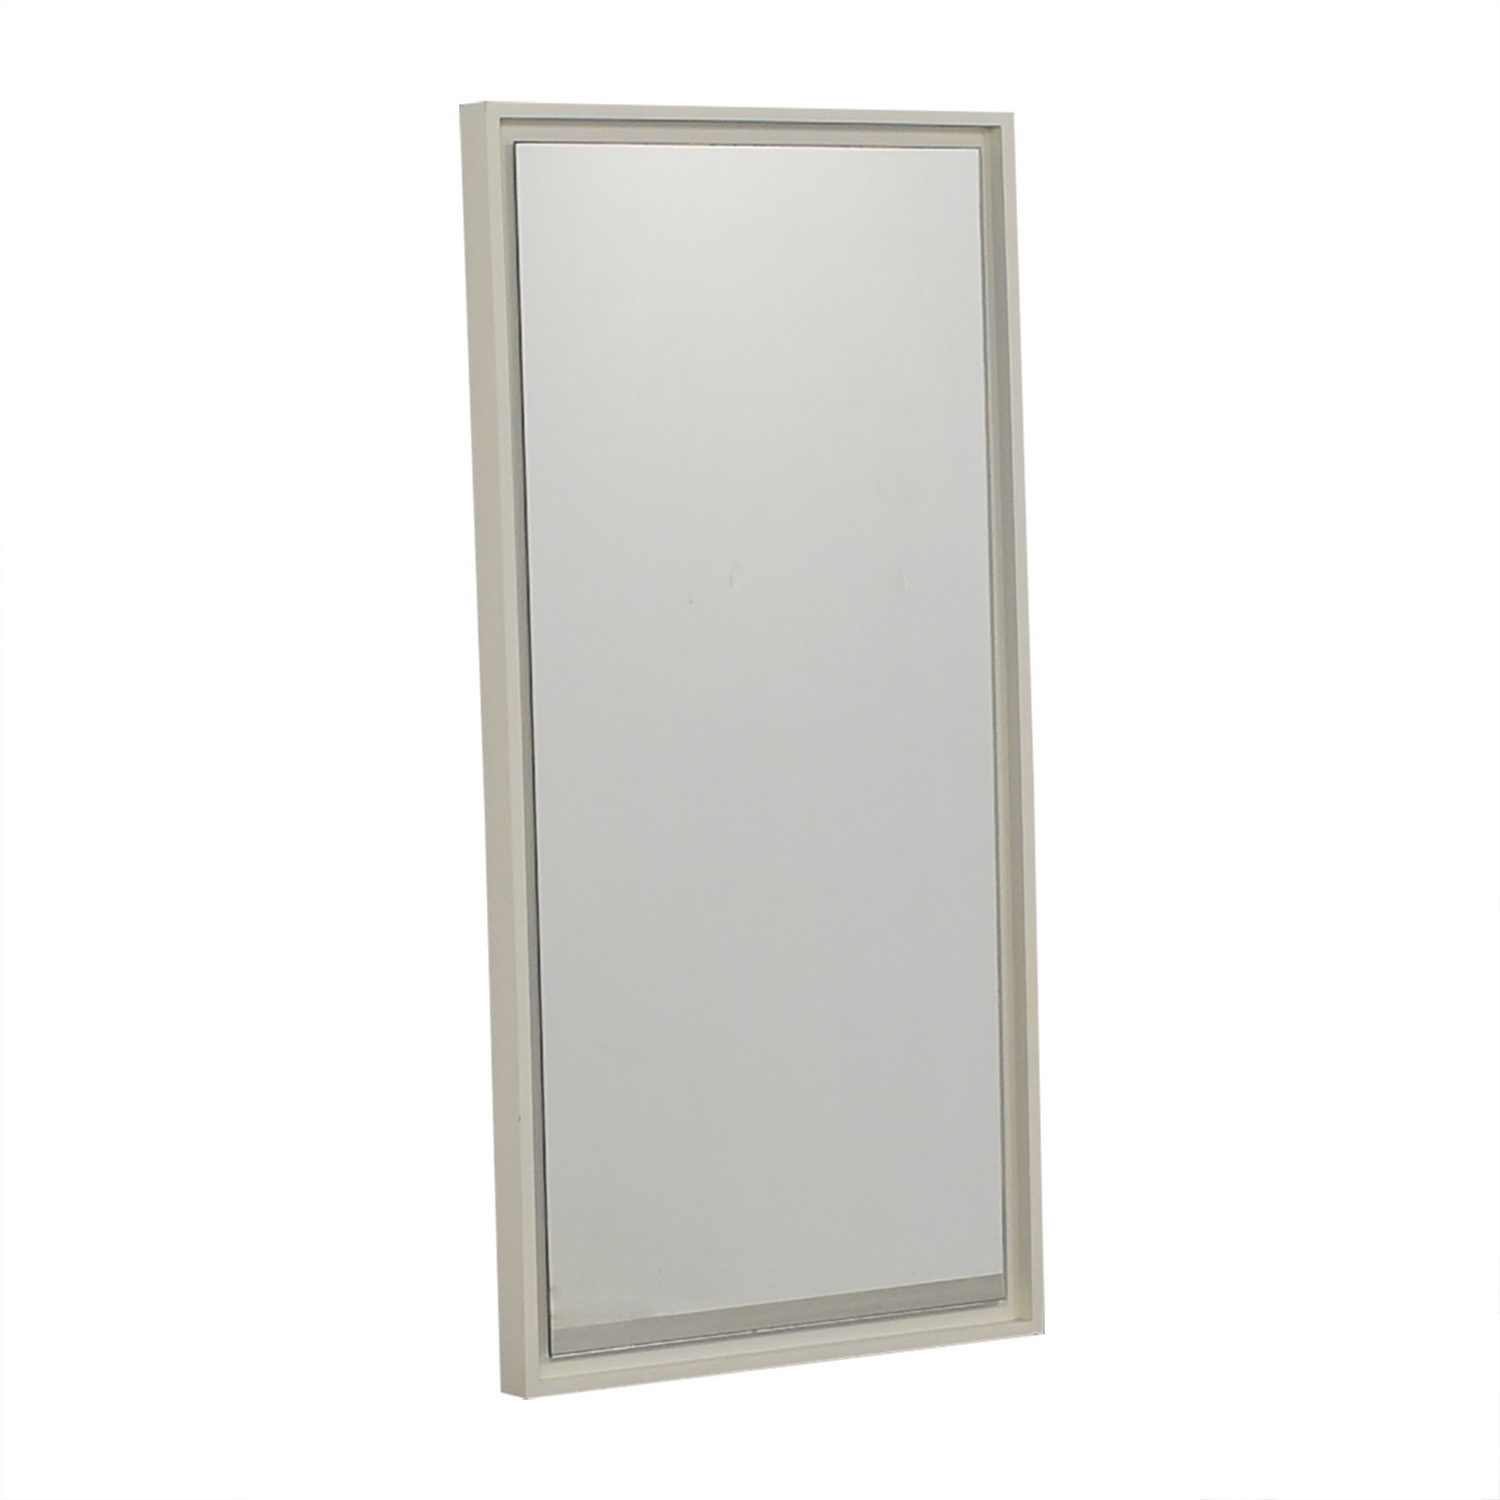 West Elm West Elm White Lacquer Floating Wood Wall Mirror discount